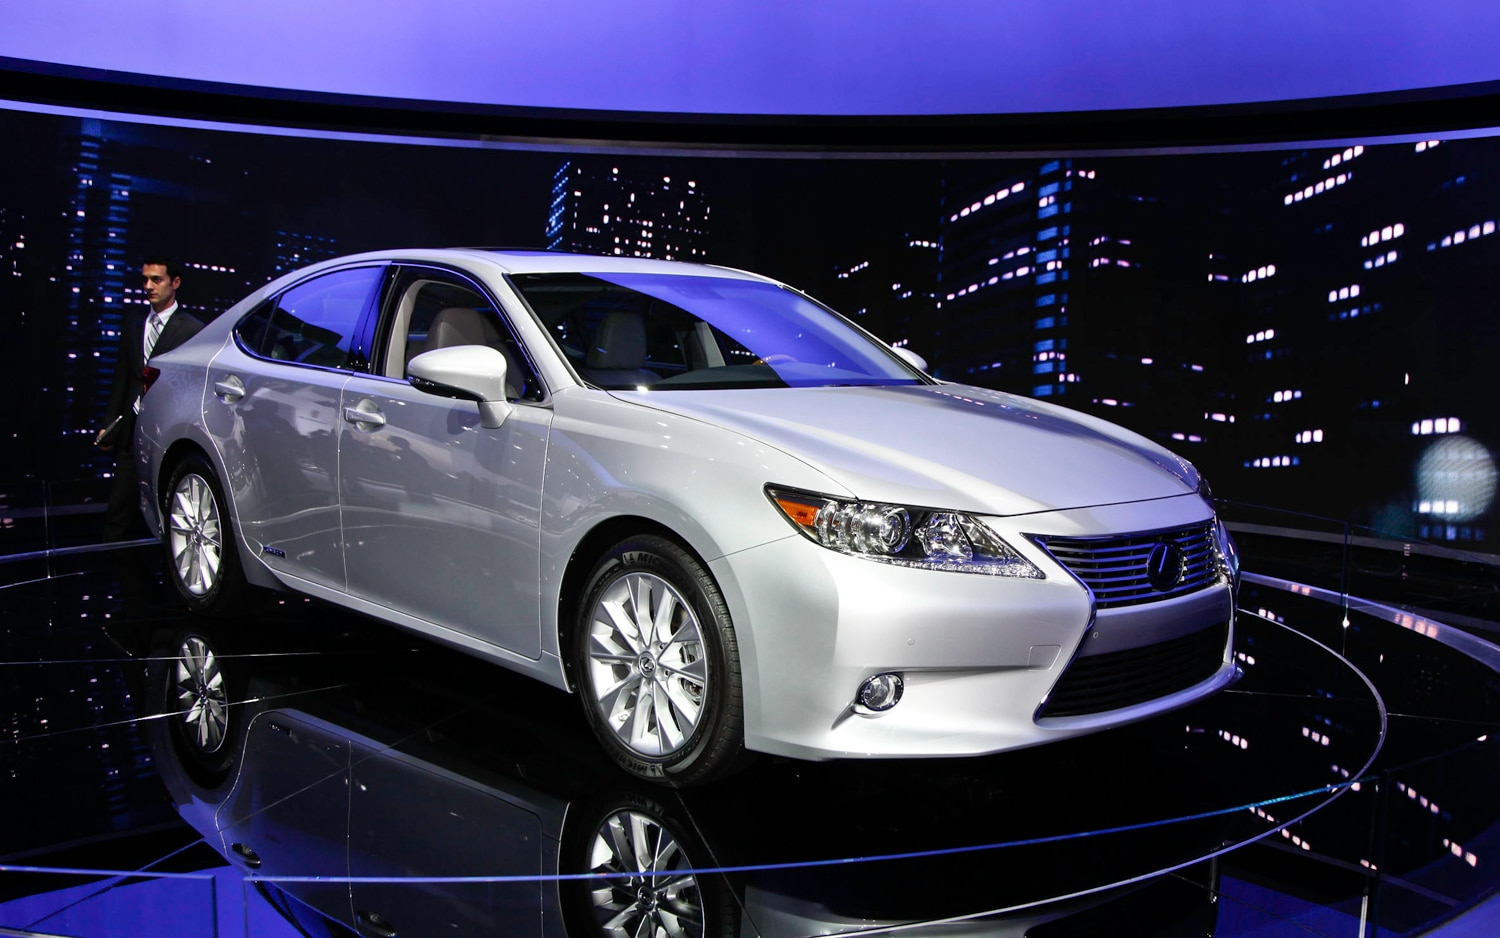 2013 Lexus ES 350 Front Right Side View1